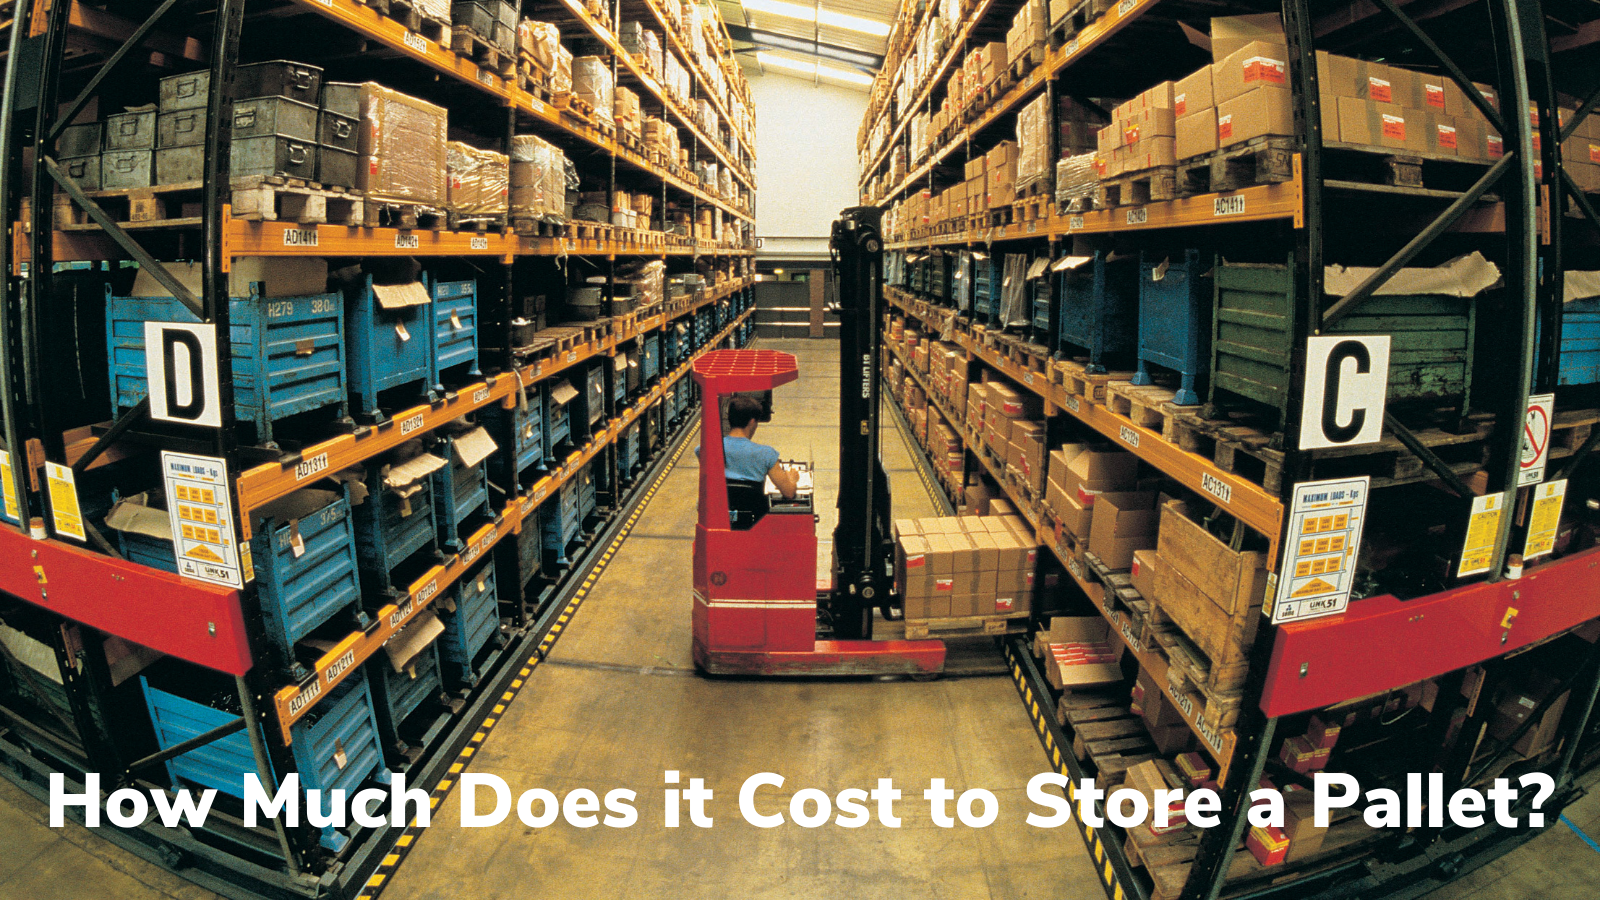 How Much Does it Cost to Store a Pallet?